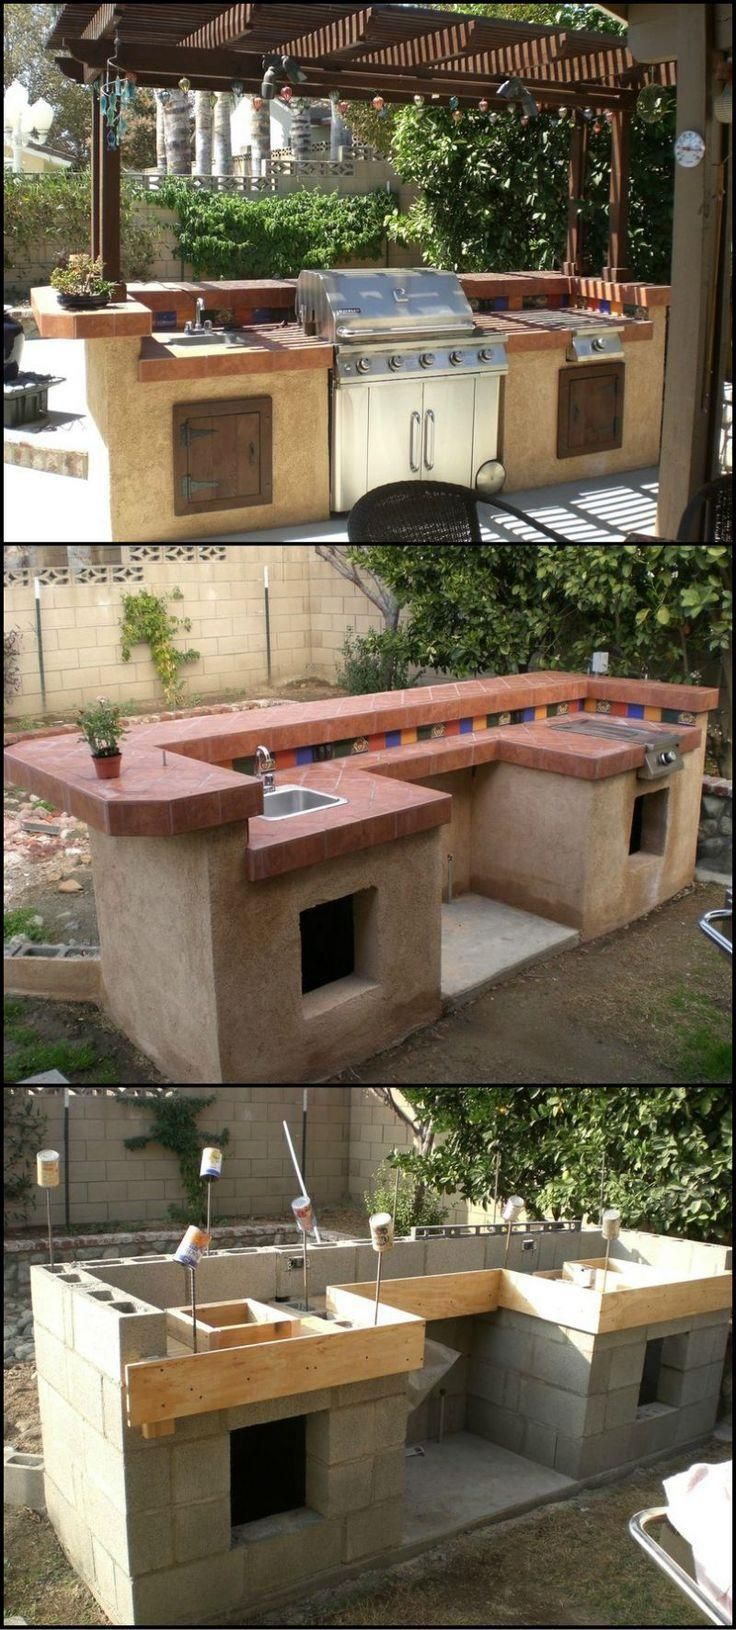 Outdoor Cinder Block Kitchen Build Outdoor Kitchen Backyard Furniture Backyard